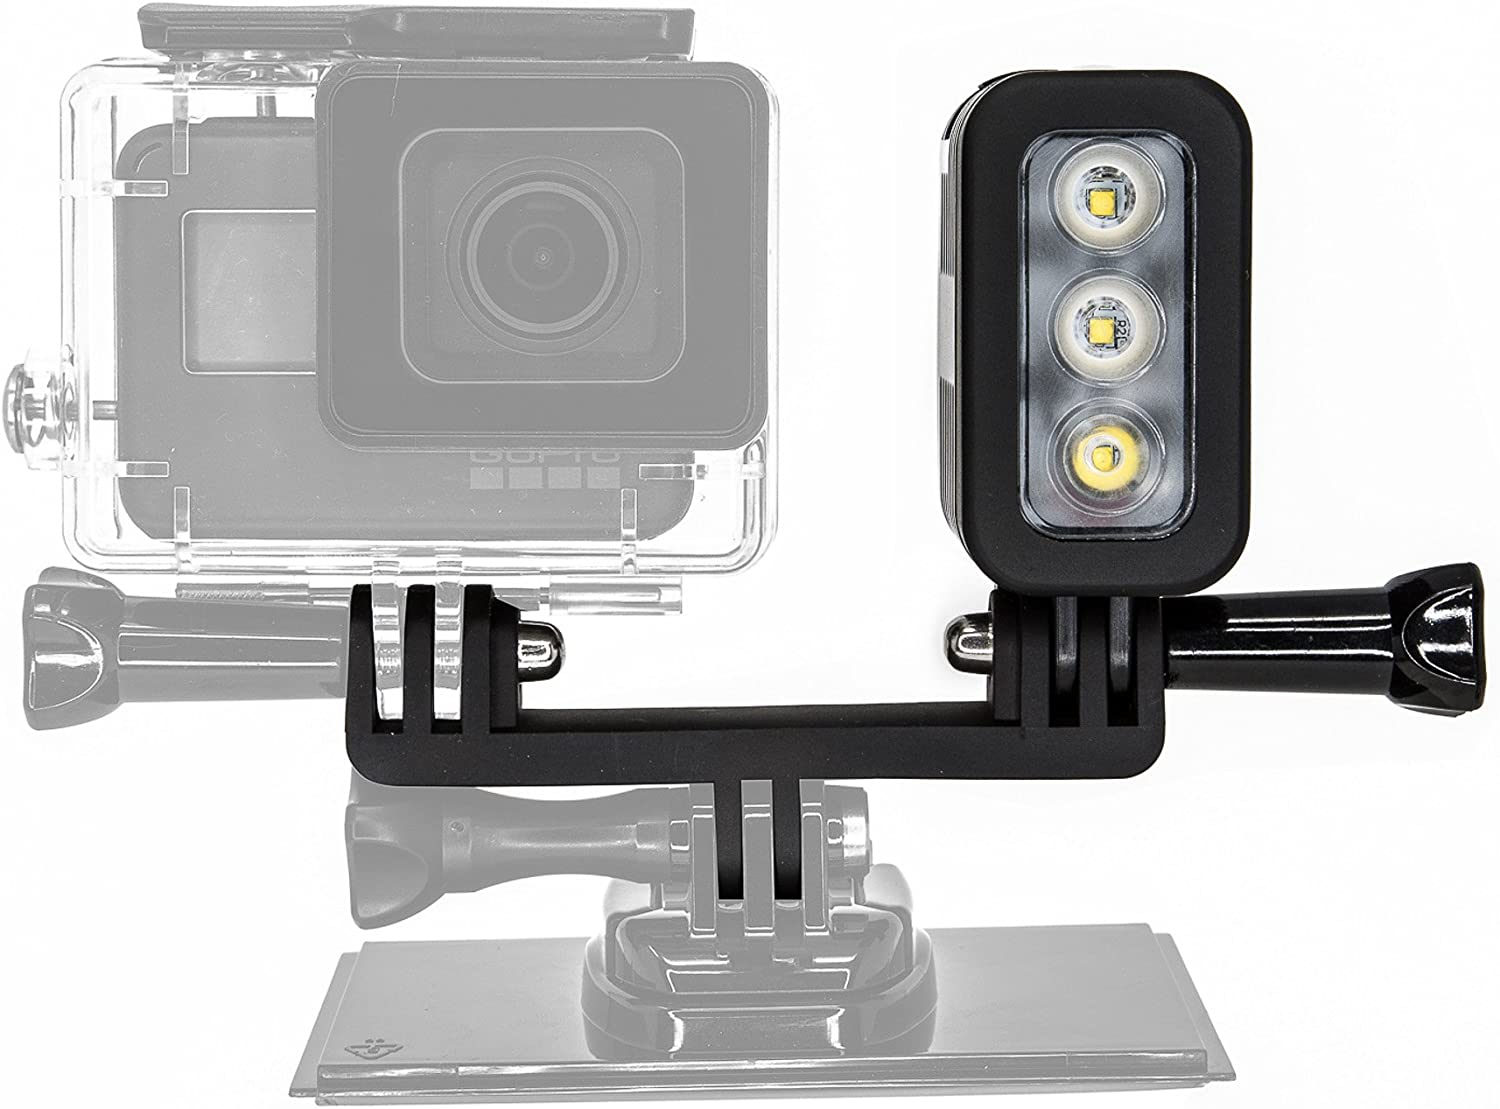 6 and 7 Ultimaxx 40M Underwater LED Light for GoPro Hero 5